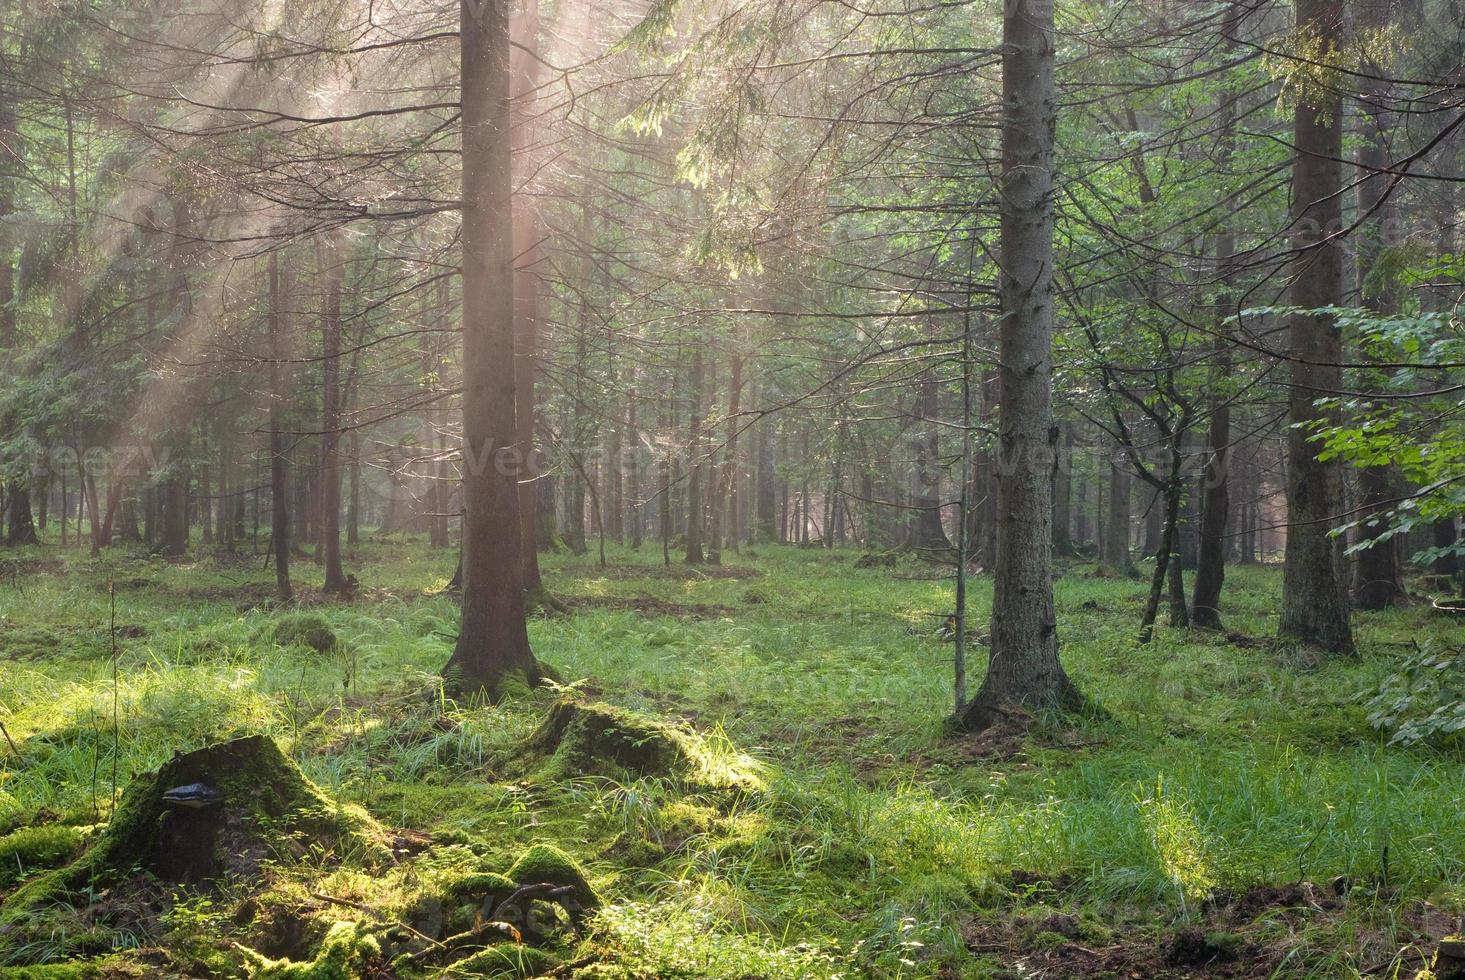 Sunlight shinning across spruce branches photo